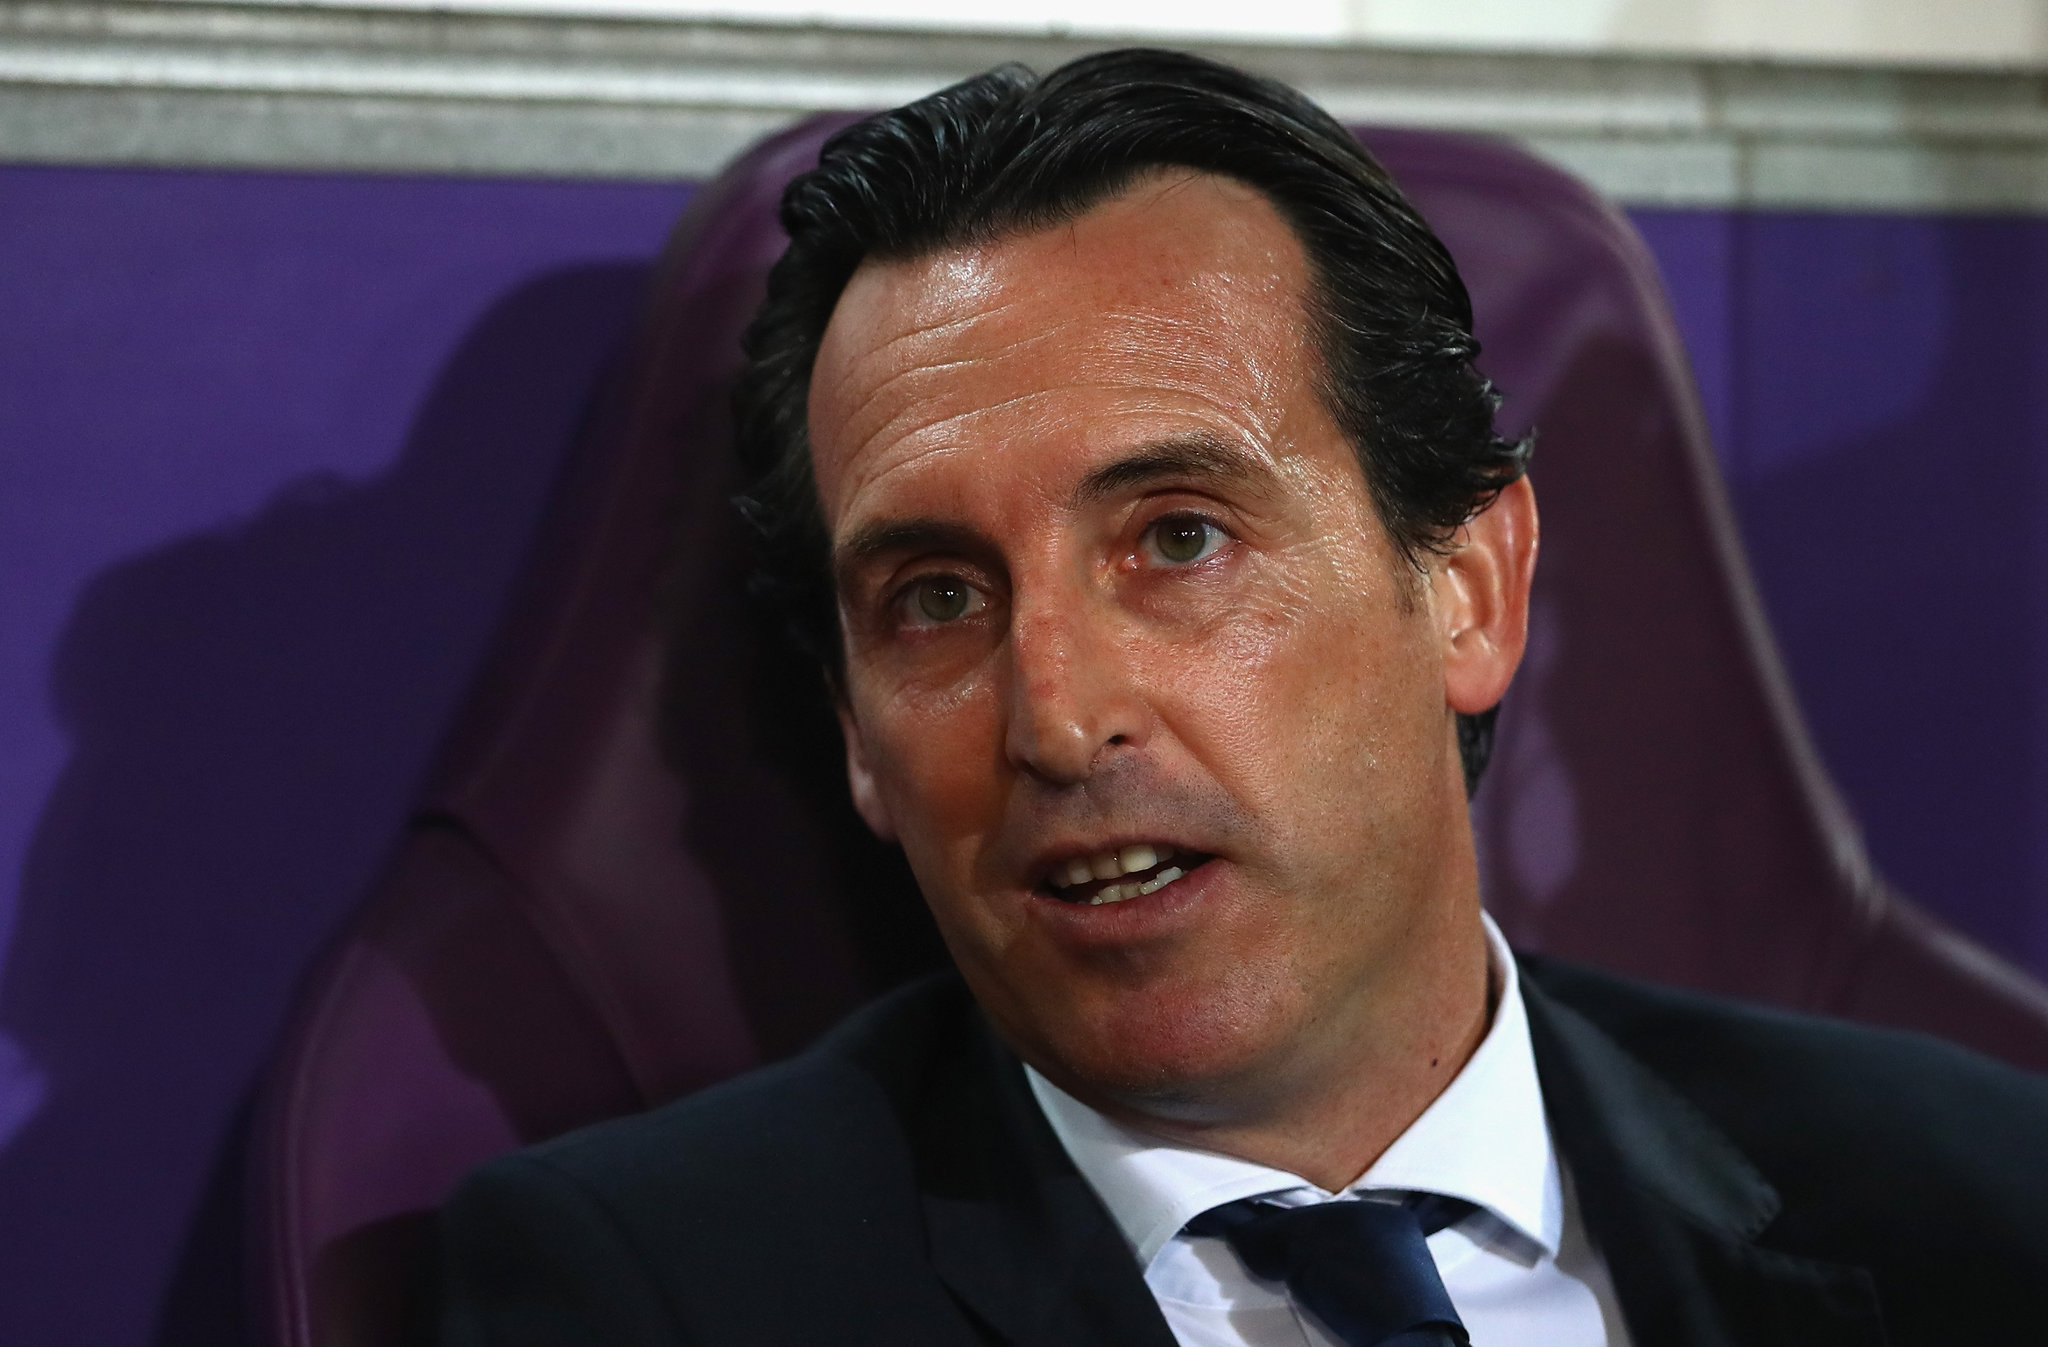 BREAKING: @Arsenal have confirmed Unai Emery as their new head coach. #SSN https://t.co/pOTsb4t0Ky